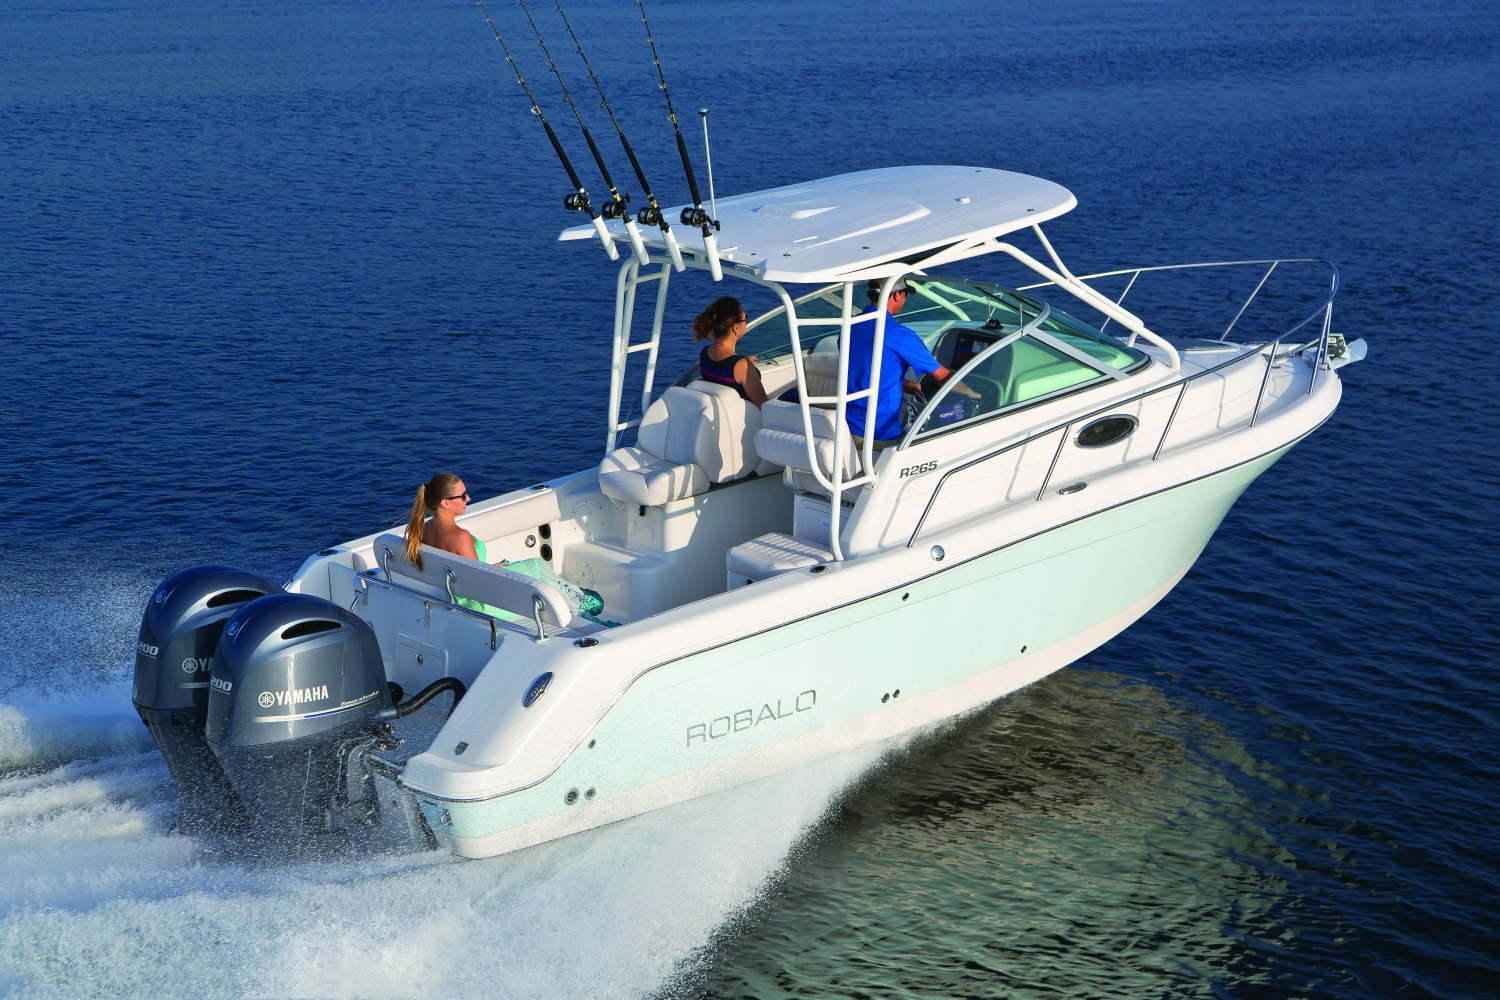 Down Payment Calculator >> New Boat Brochures - 2017 ROBALO R265